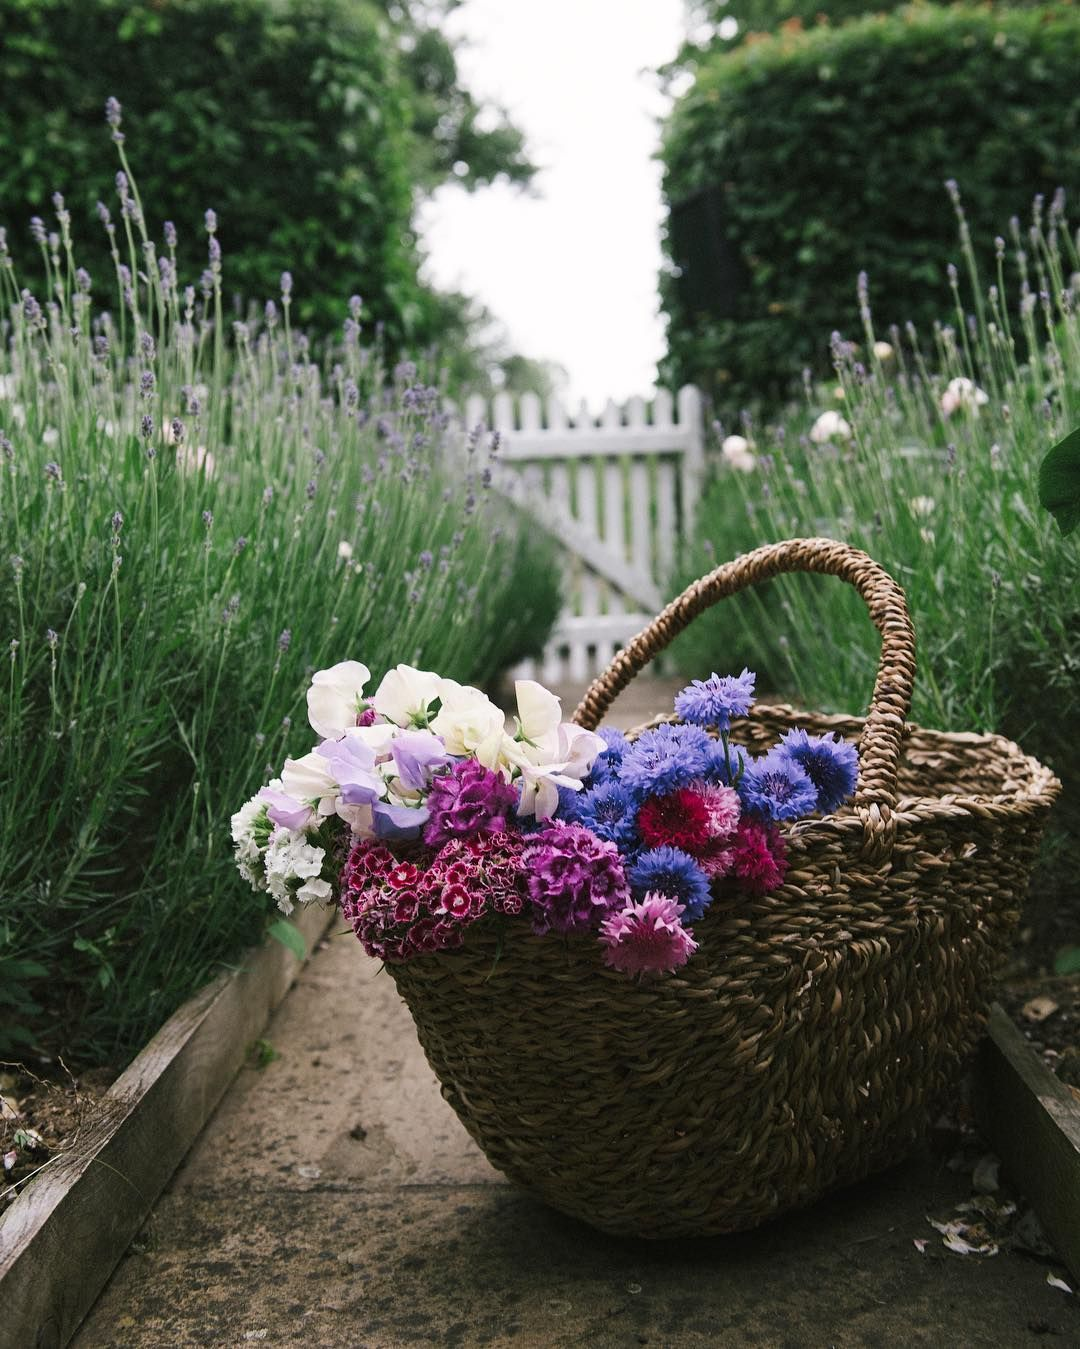 Basket full of flowers just_belle Daisy mae, Country